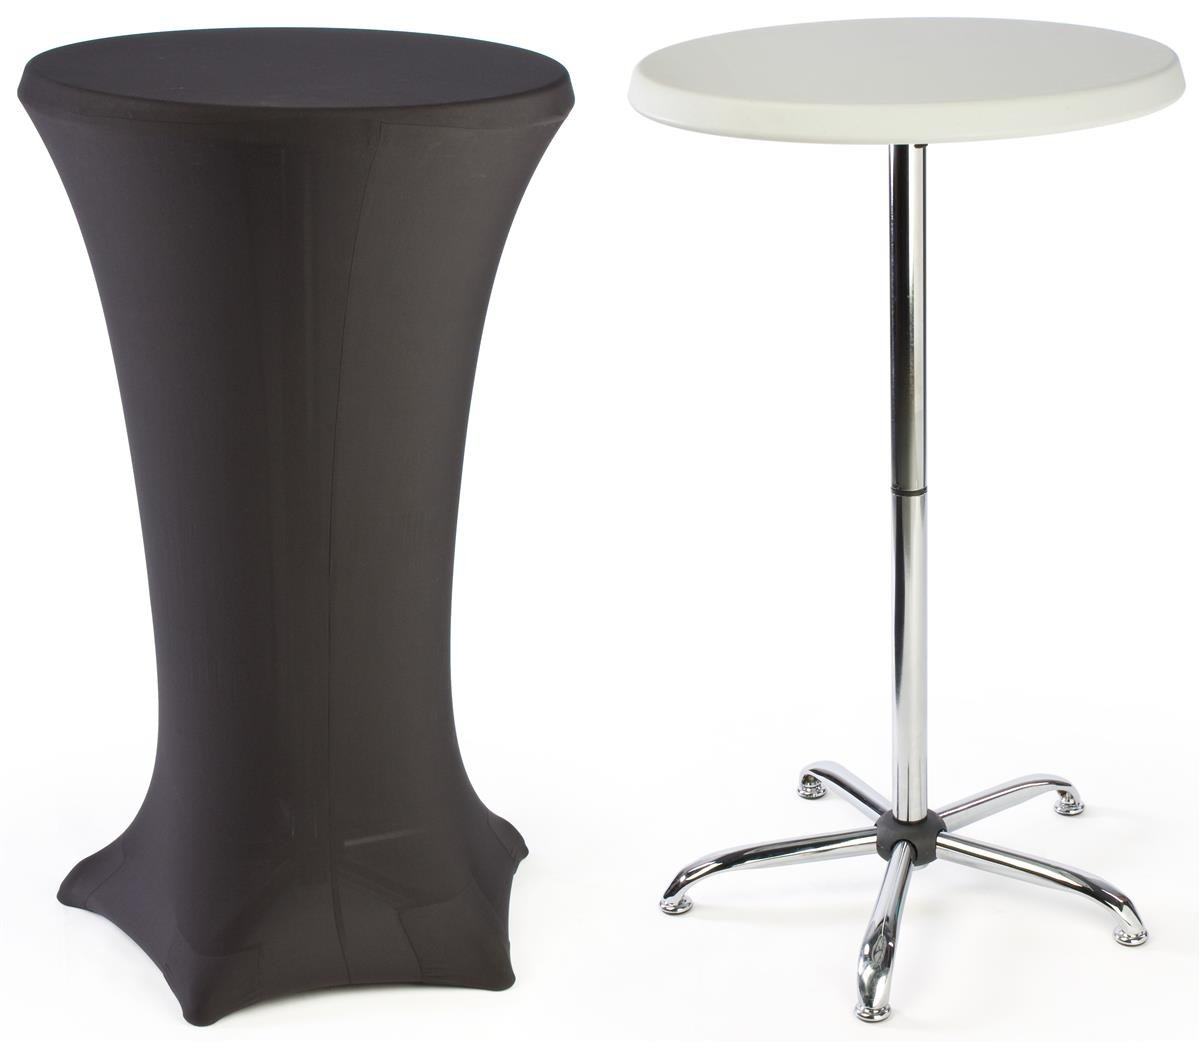 Cocktail Tables Feature a Black Spandex Cover and a Portable Design.